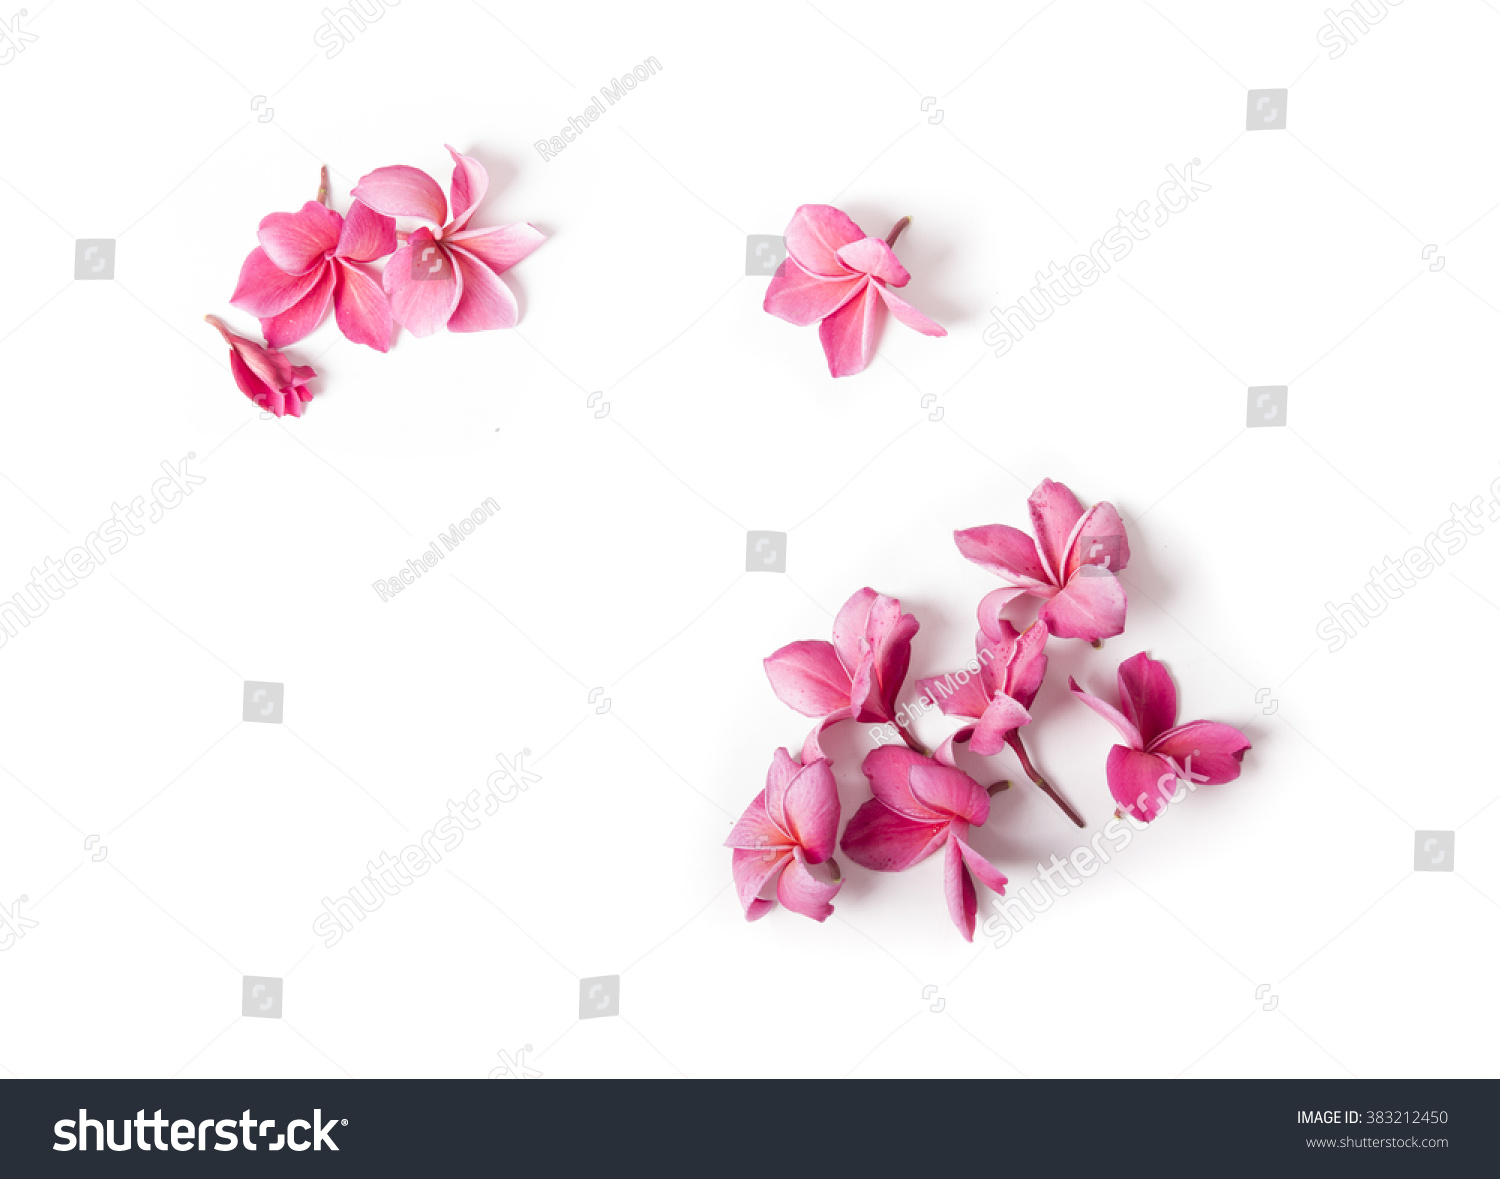 Group of Pink Frangipani isolated on White #383212450